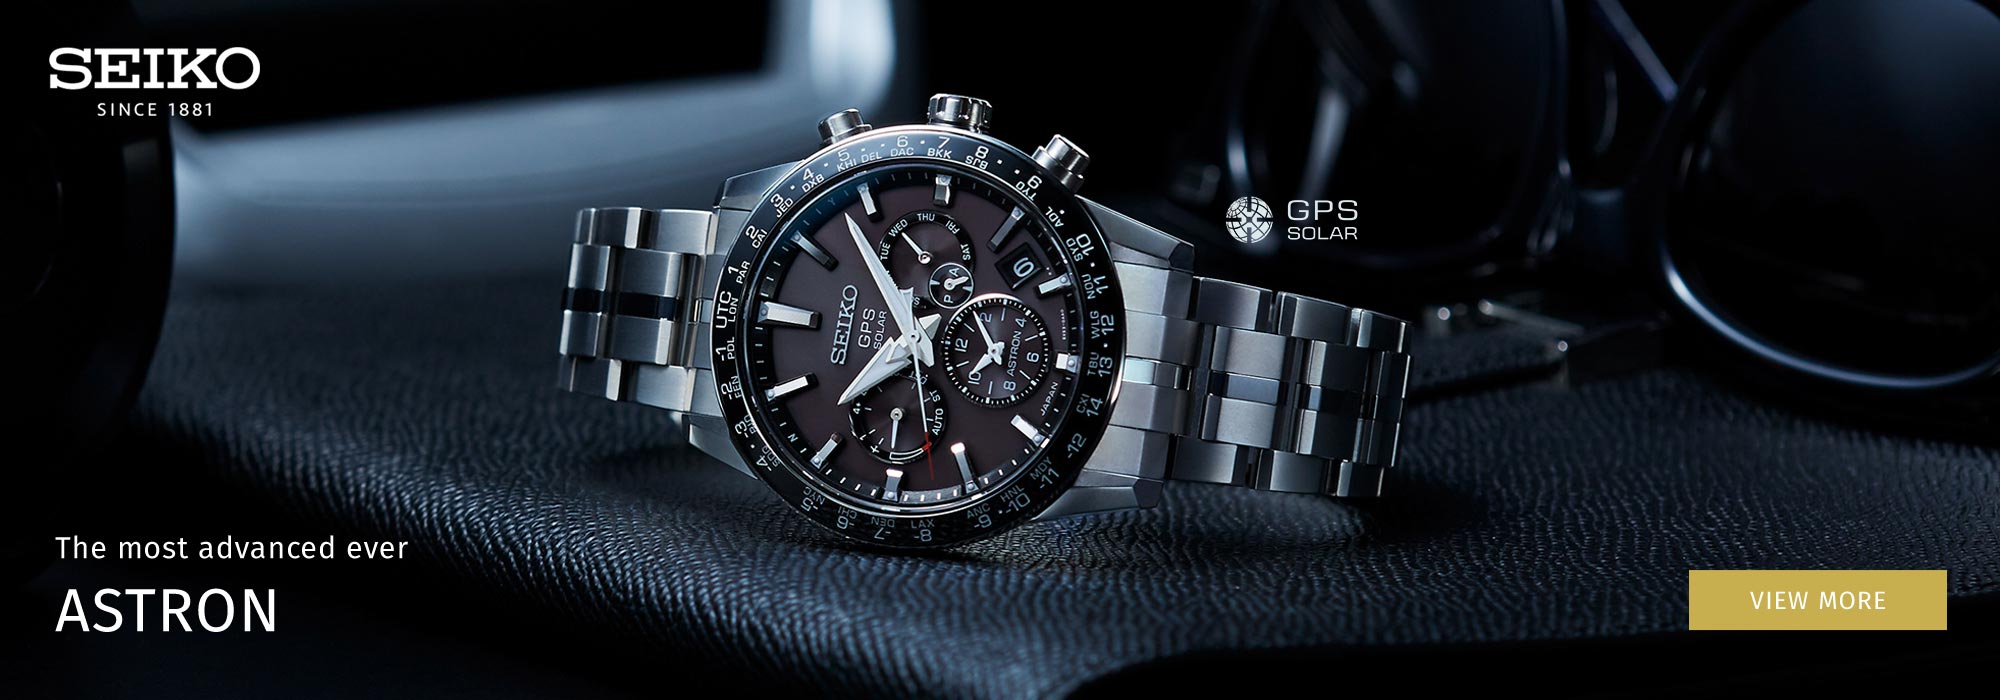 Seiko Watches Available At Keoghans Showcase Jewellers